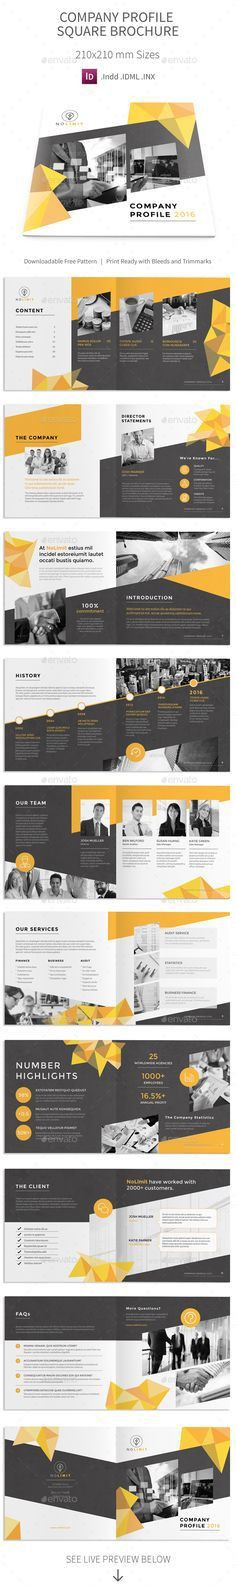 Company Profile PowerPoint Template | Company profile, Powerpoint ...